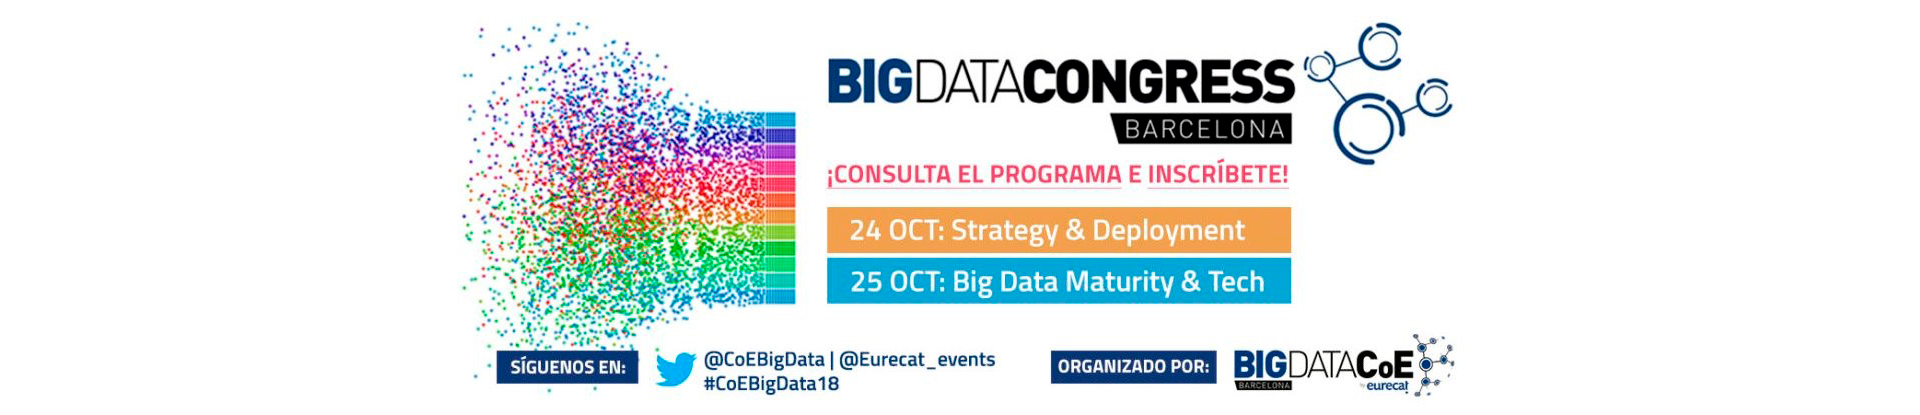 Big_Data_Congress_Cabecera